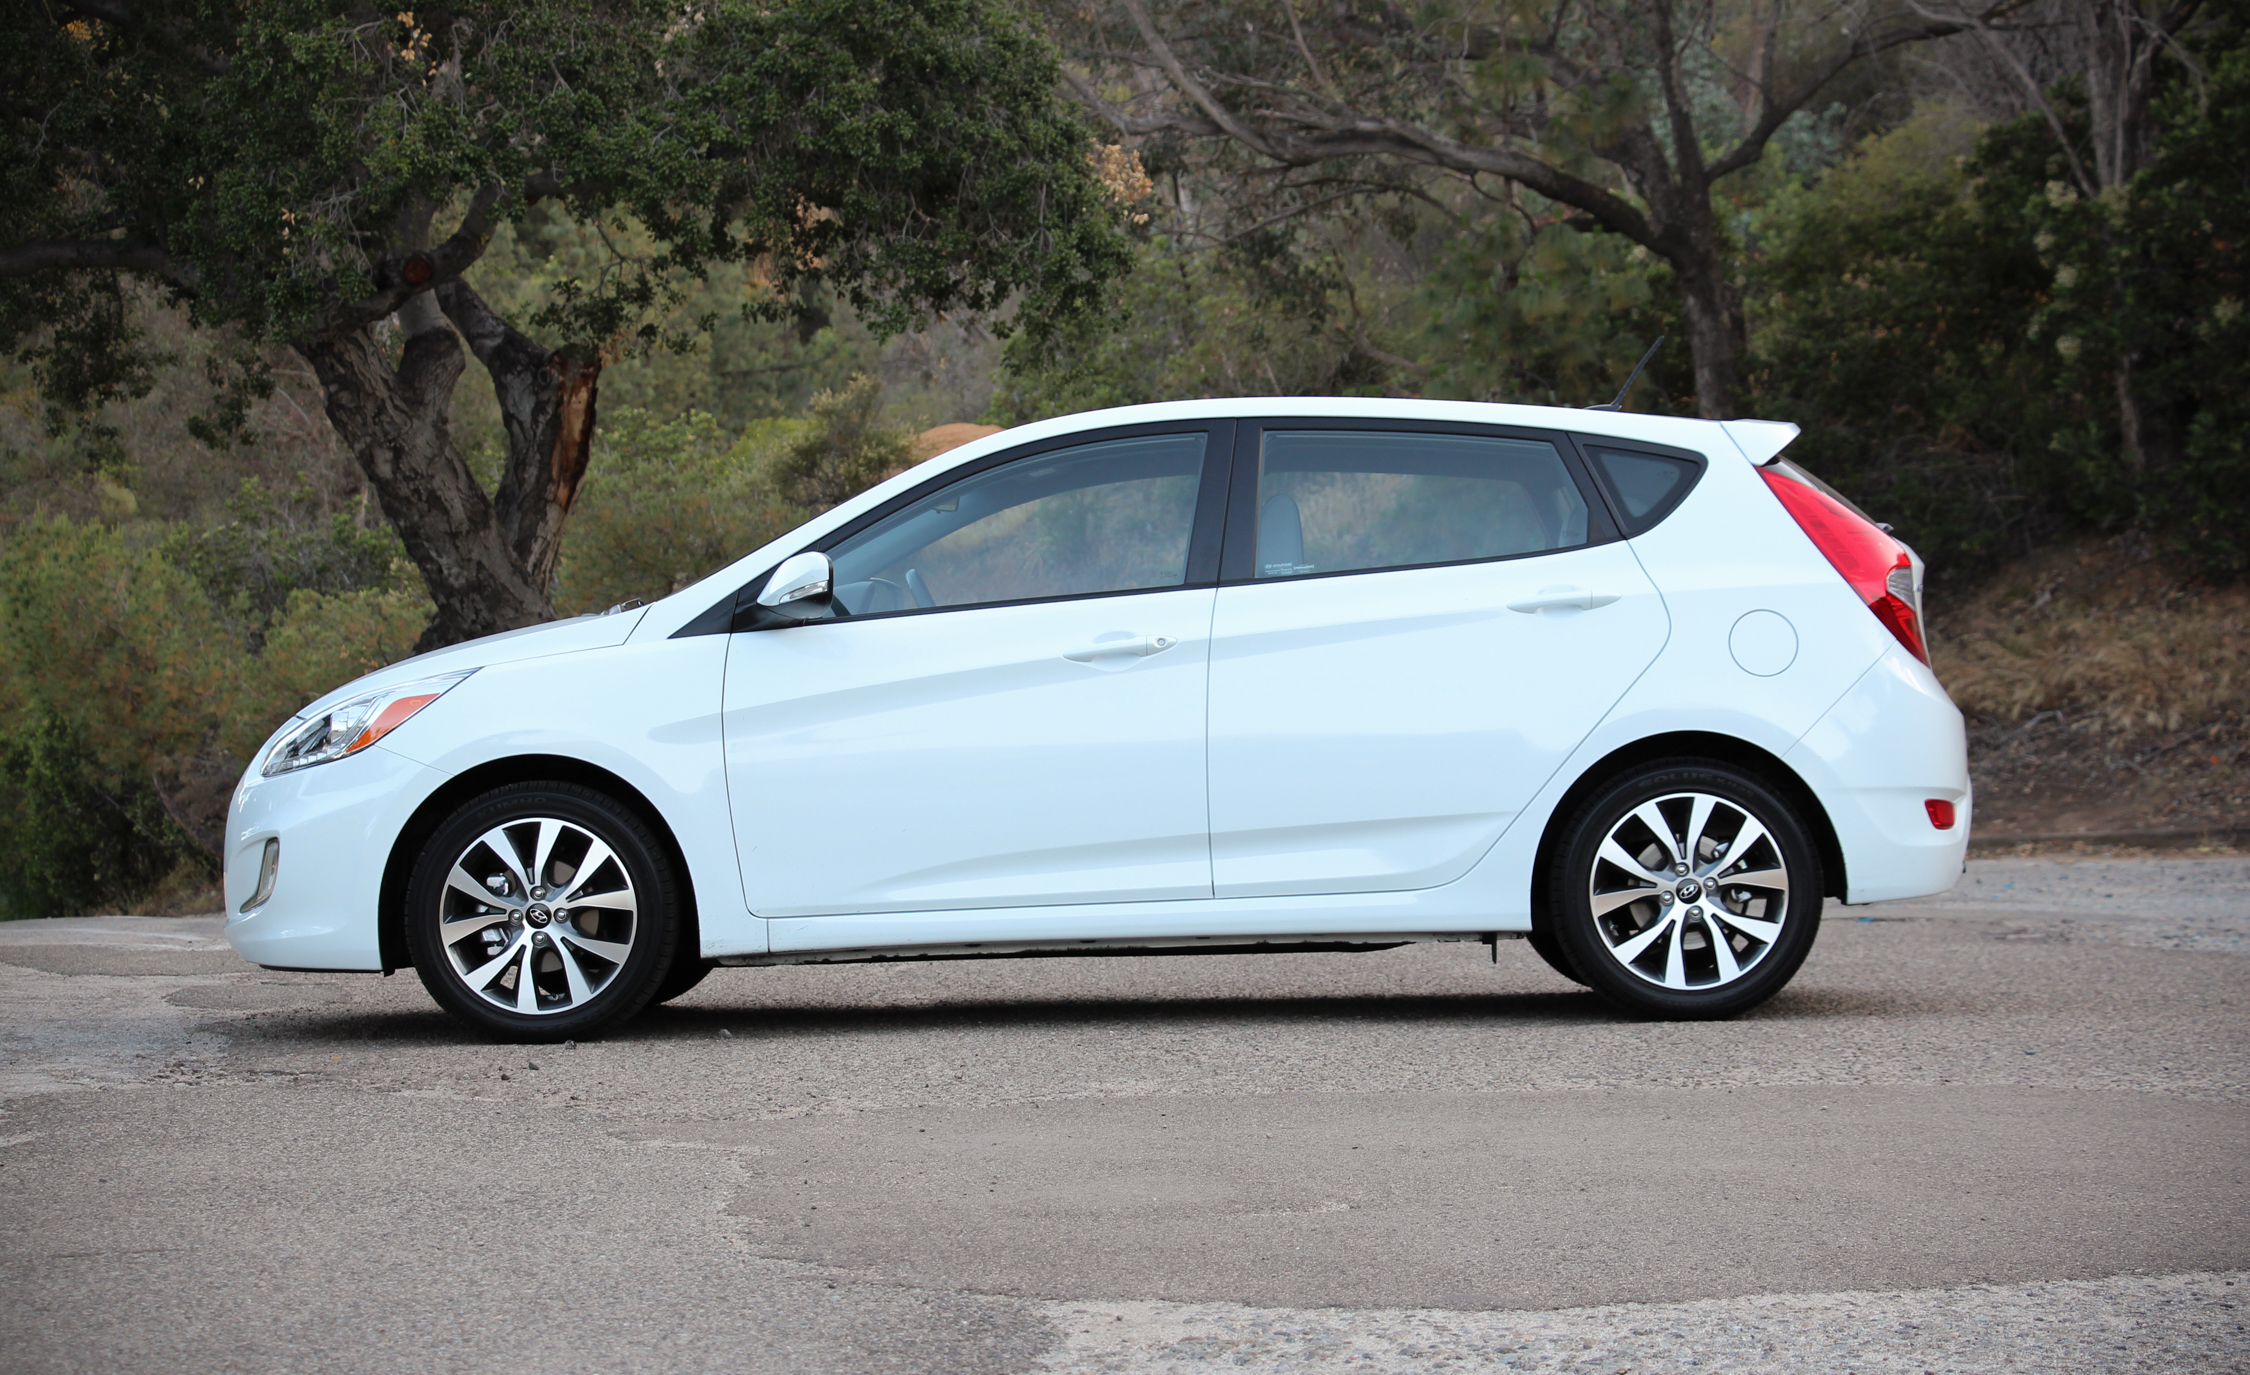 2016 Hyundai Accent Sport Hatchback (Photo 4 of 13)